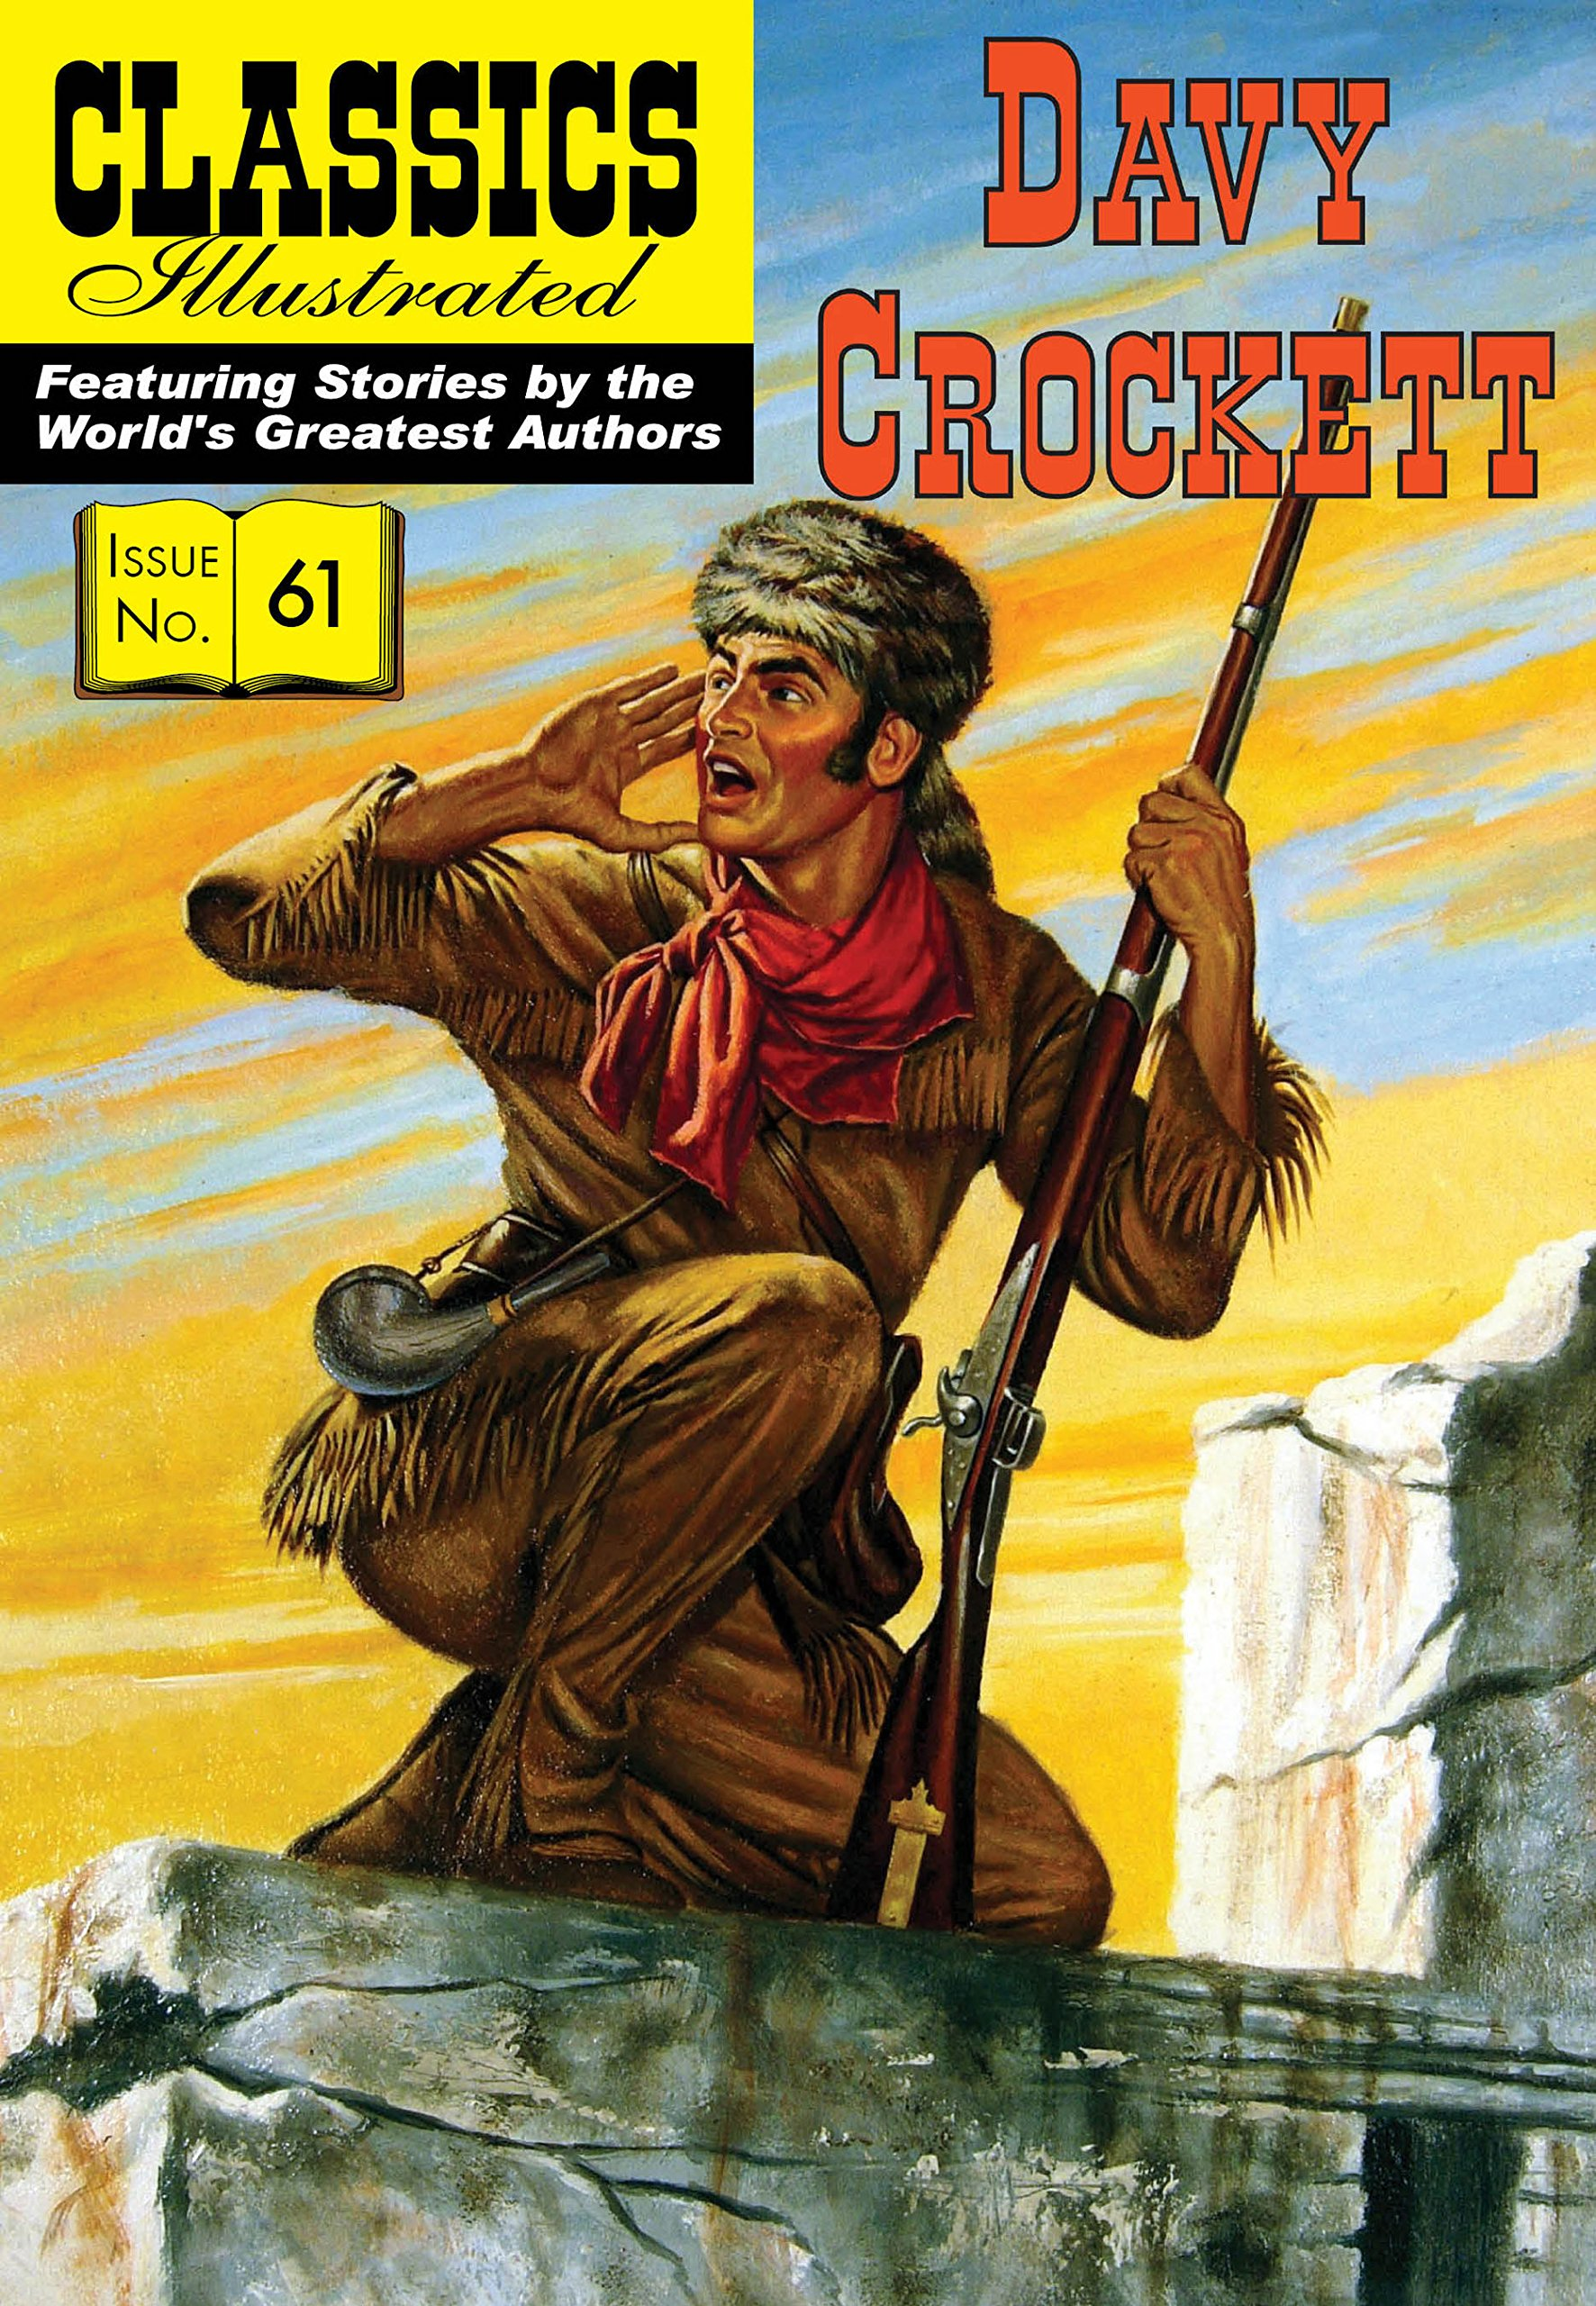 Davy Crockett (Classics Illustrated)